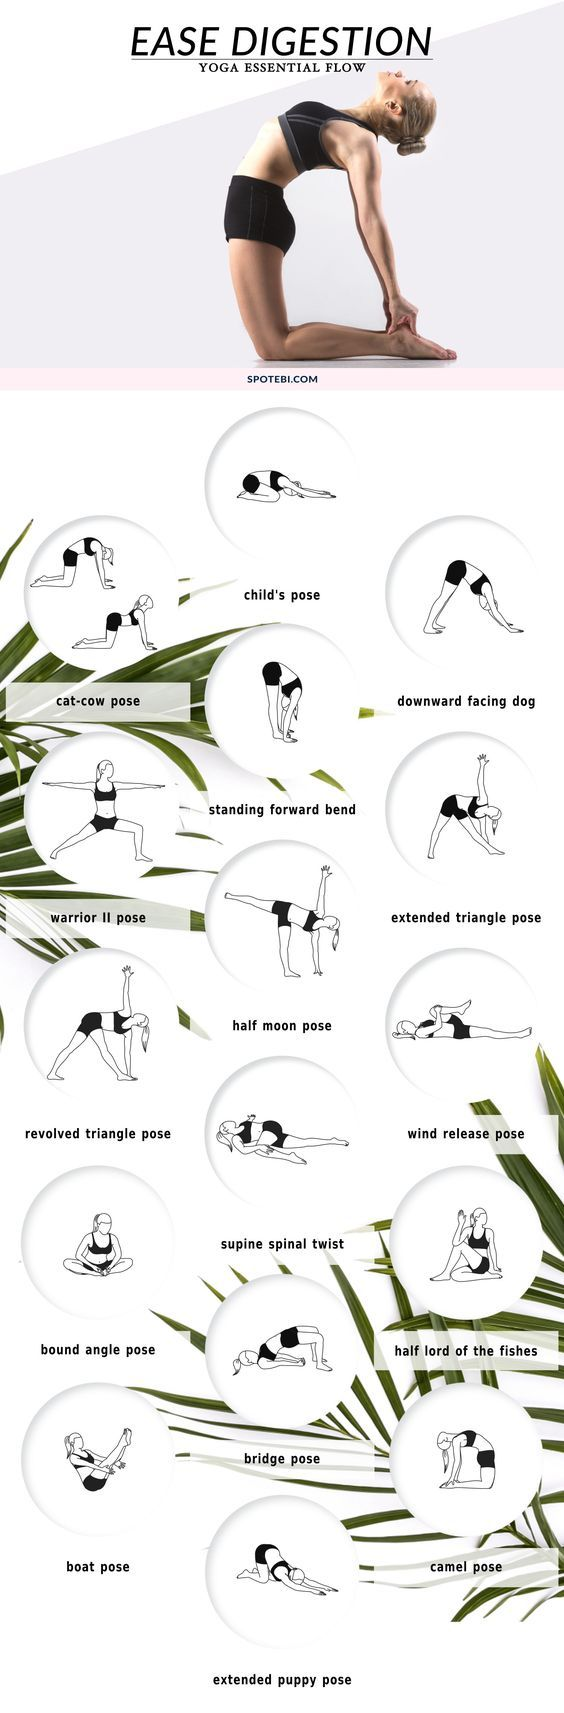 Boost digestion, relieve constipation and de-bloat with this 20-minute yoga essential flow. Pair these 17 yoga poses with deep breathing to massage the abdominal organs, increase circulation and get things moving! http://www.spotebi.com/yoga-sequences/ease-digestion/: